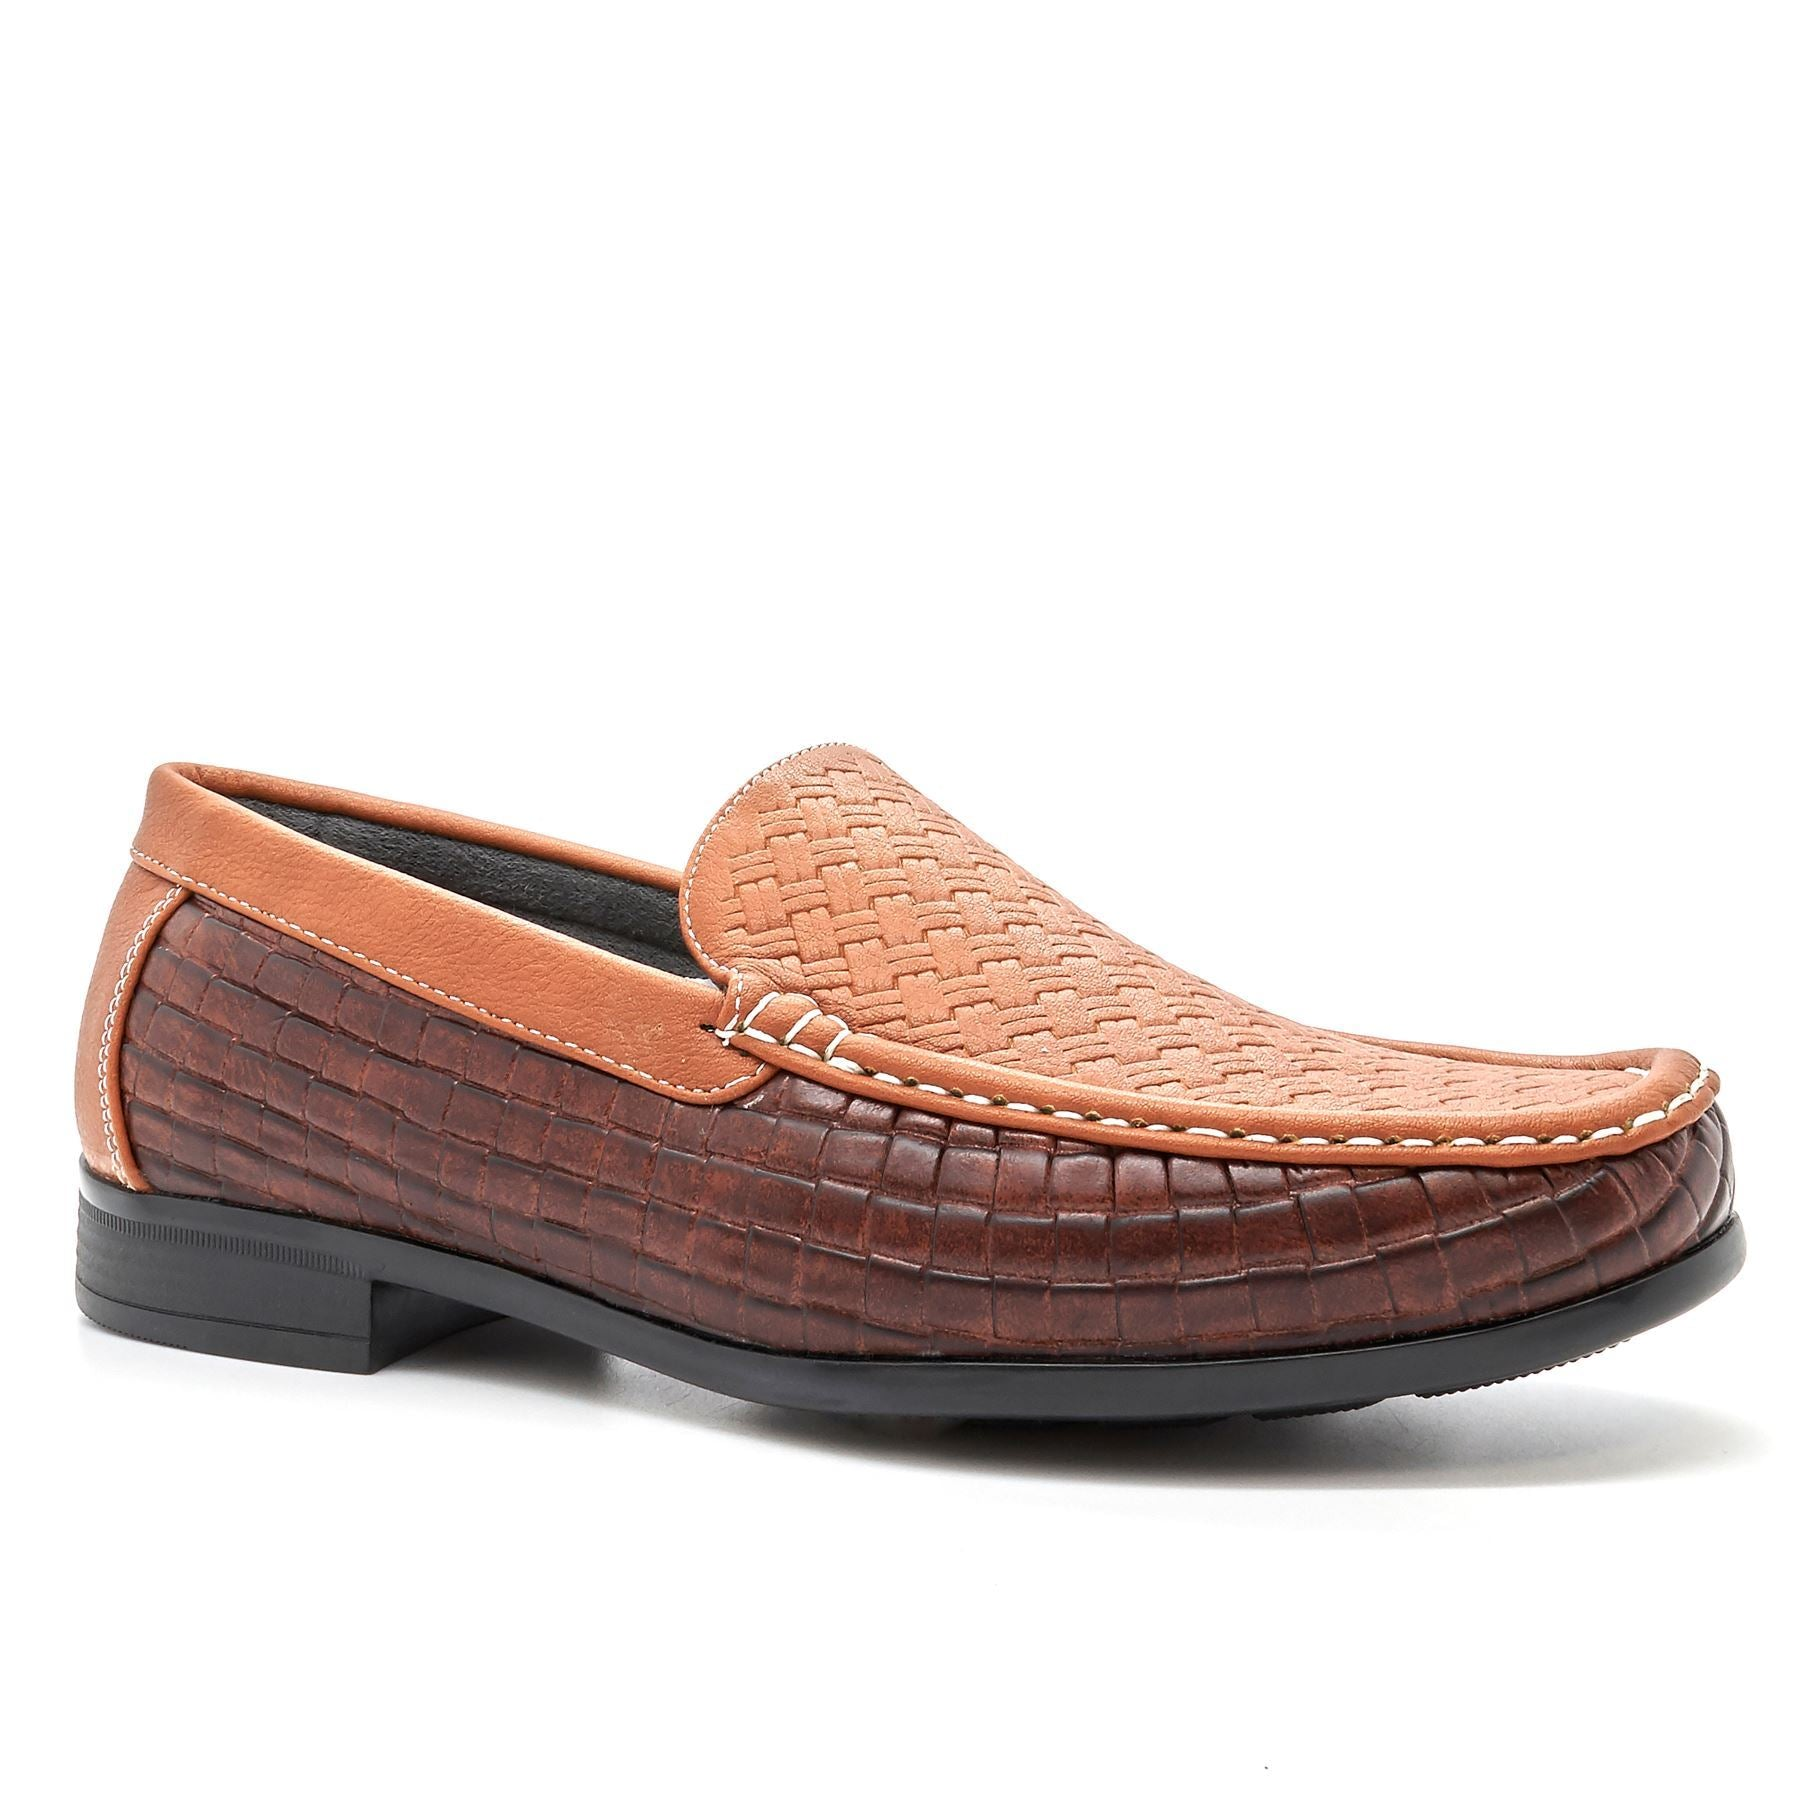 Tan Woven Style Loafers